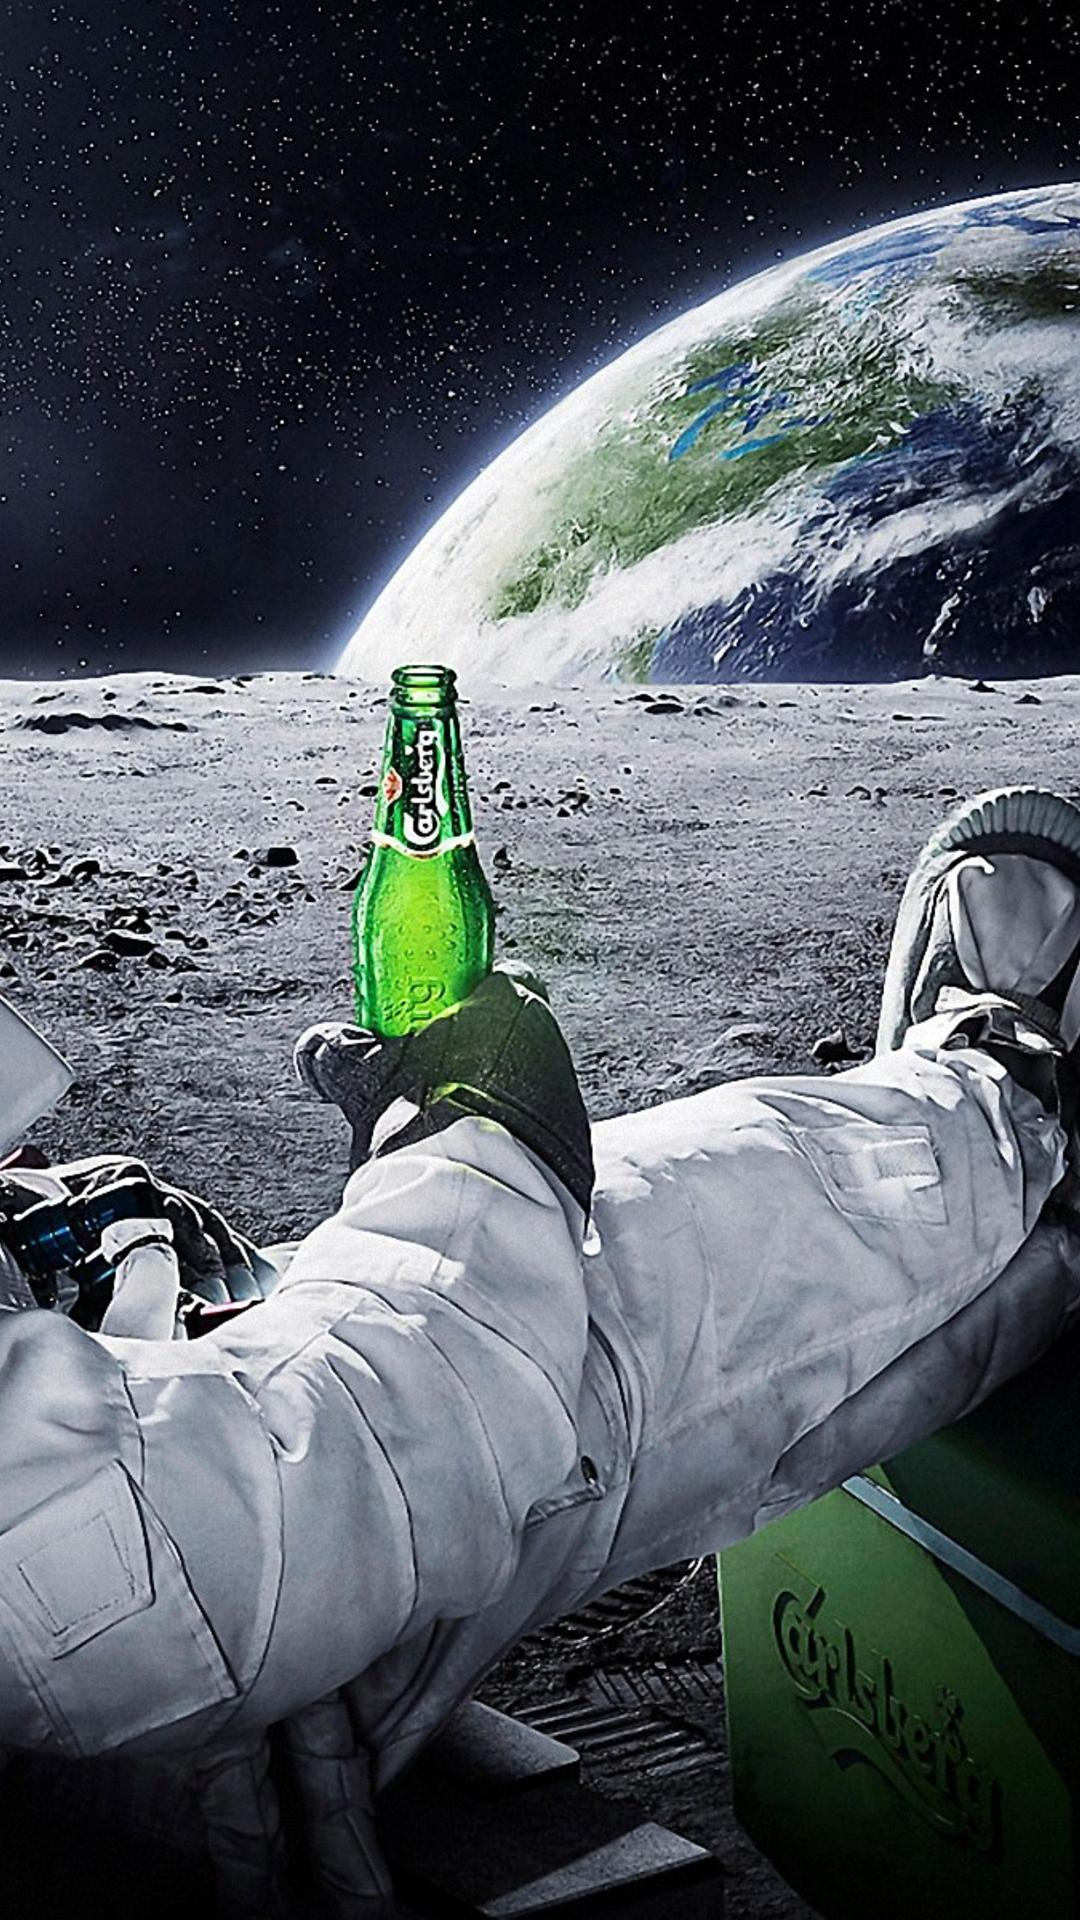 Sodapoppin 3d Wallpaper Drinking Beer On The Moon Wallpaper Download 1080x1920